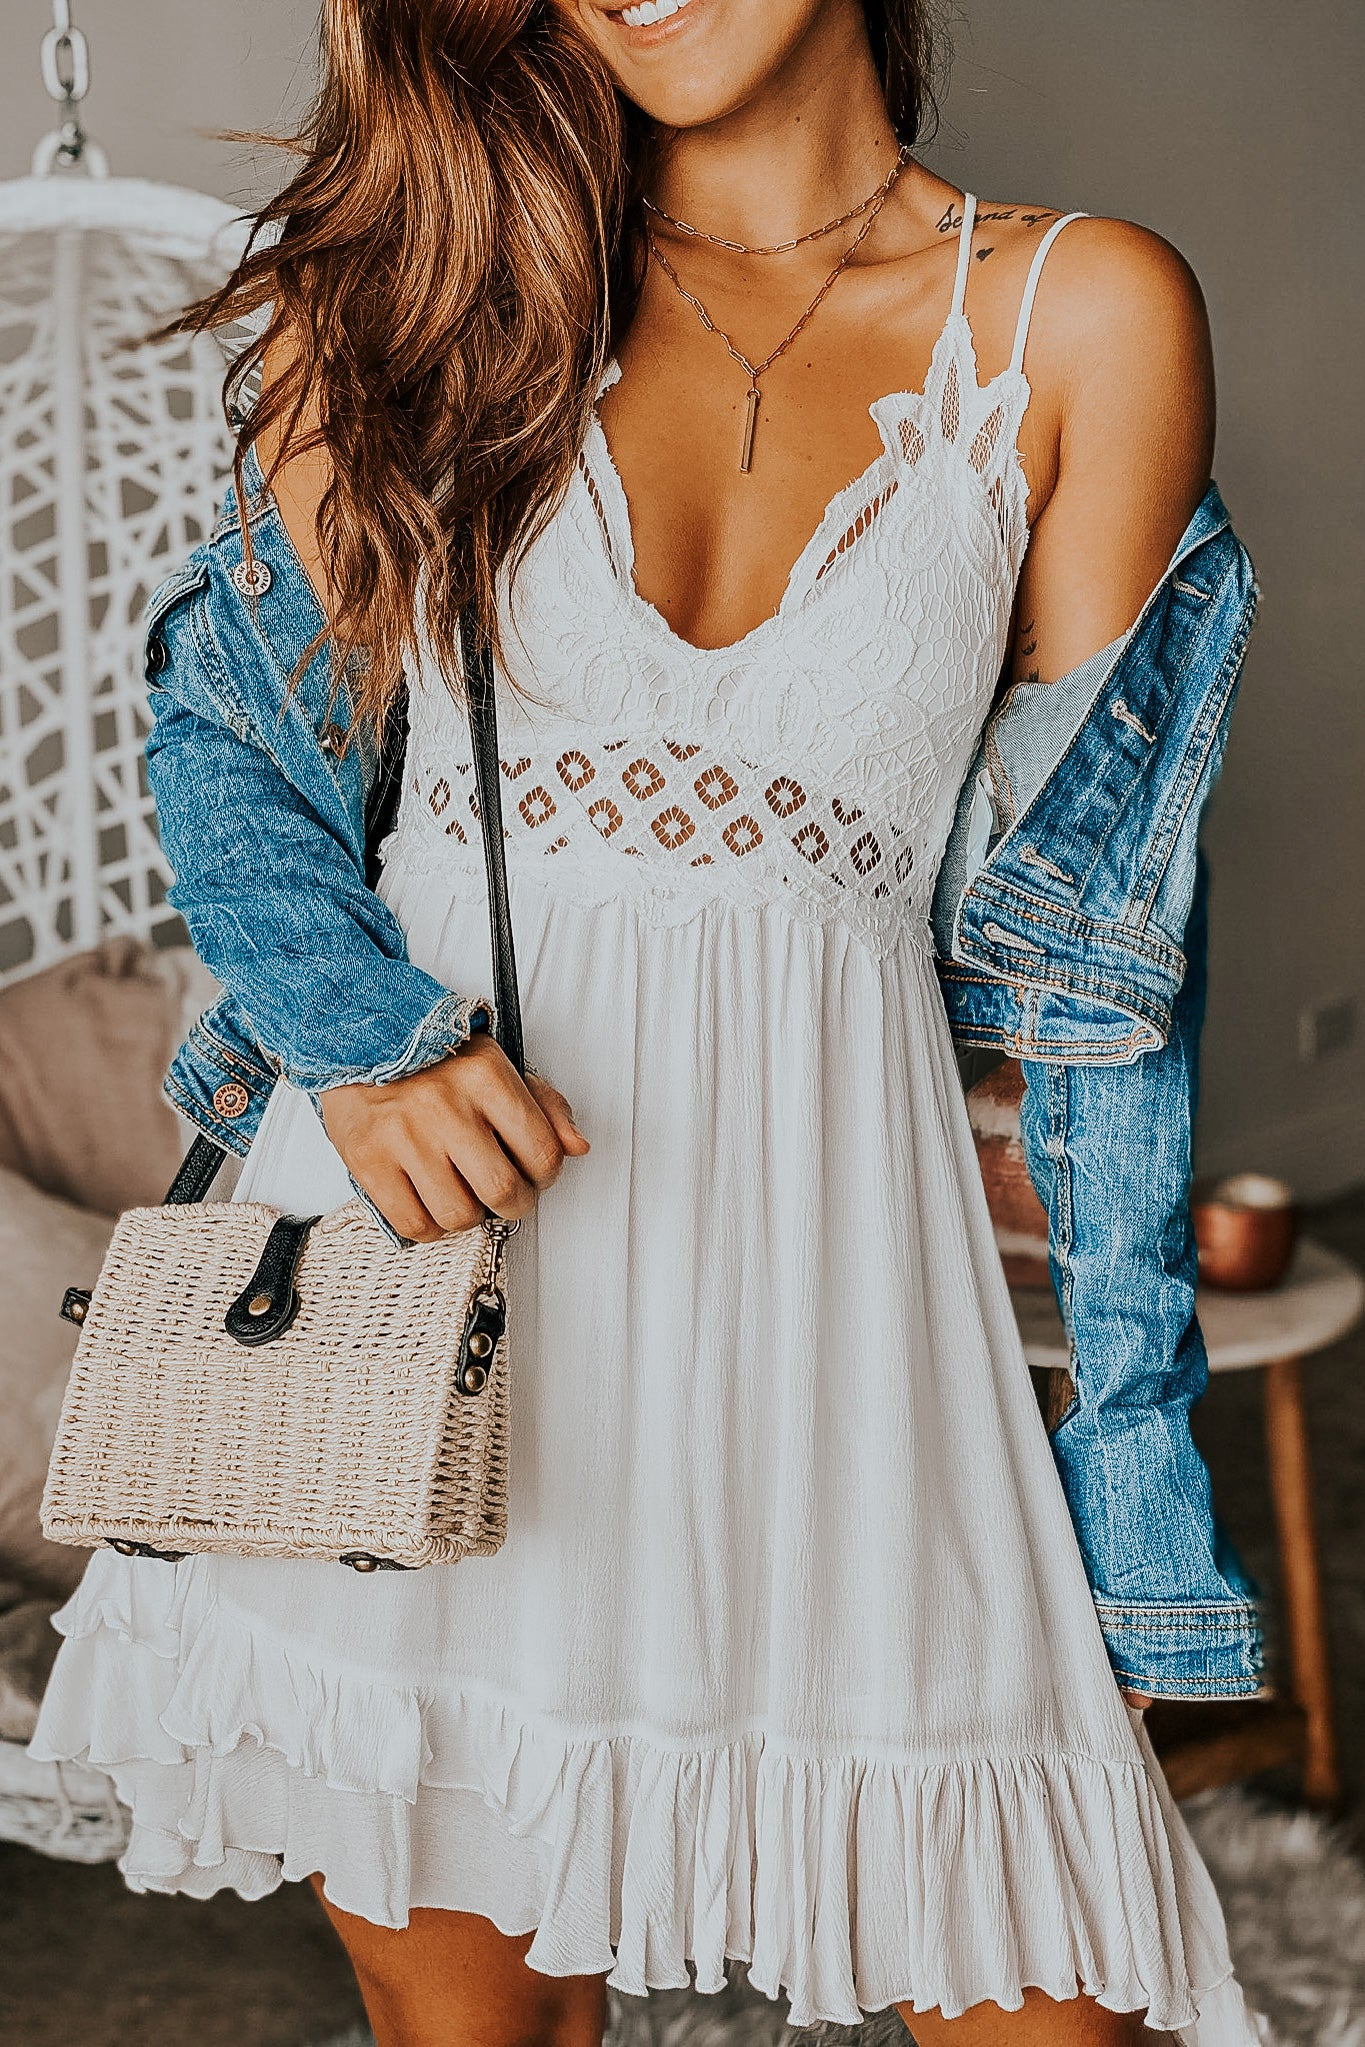 Lifestyle white crochet top short dress with criss cross back